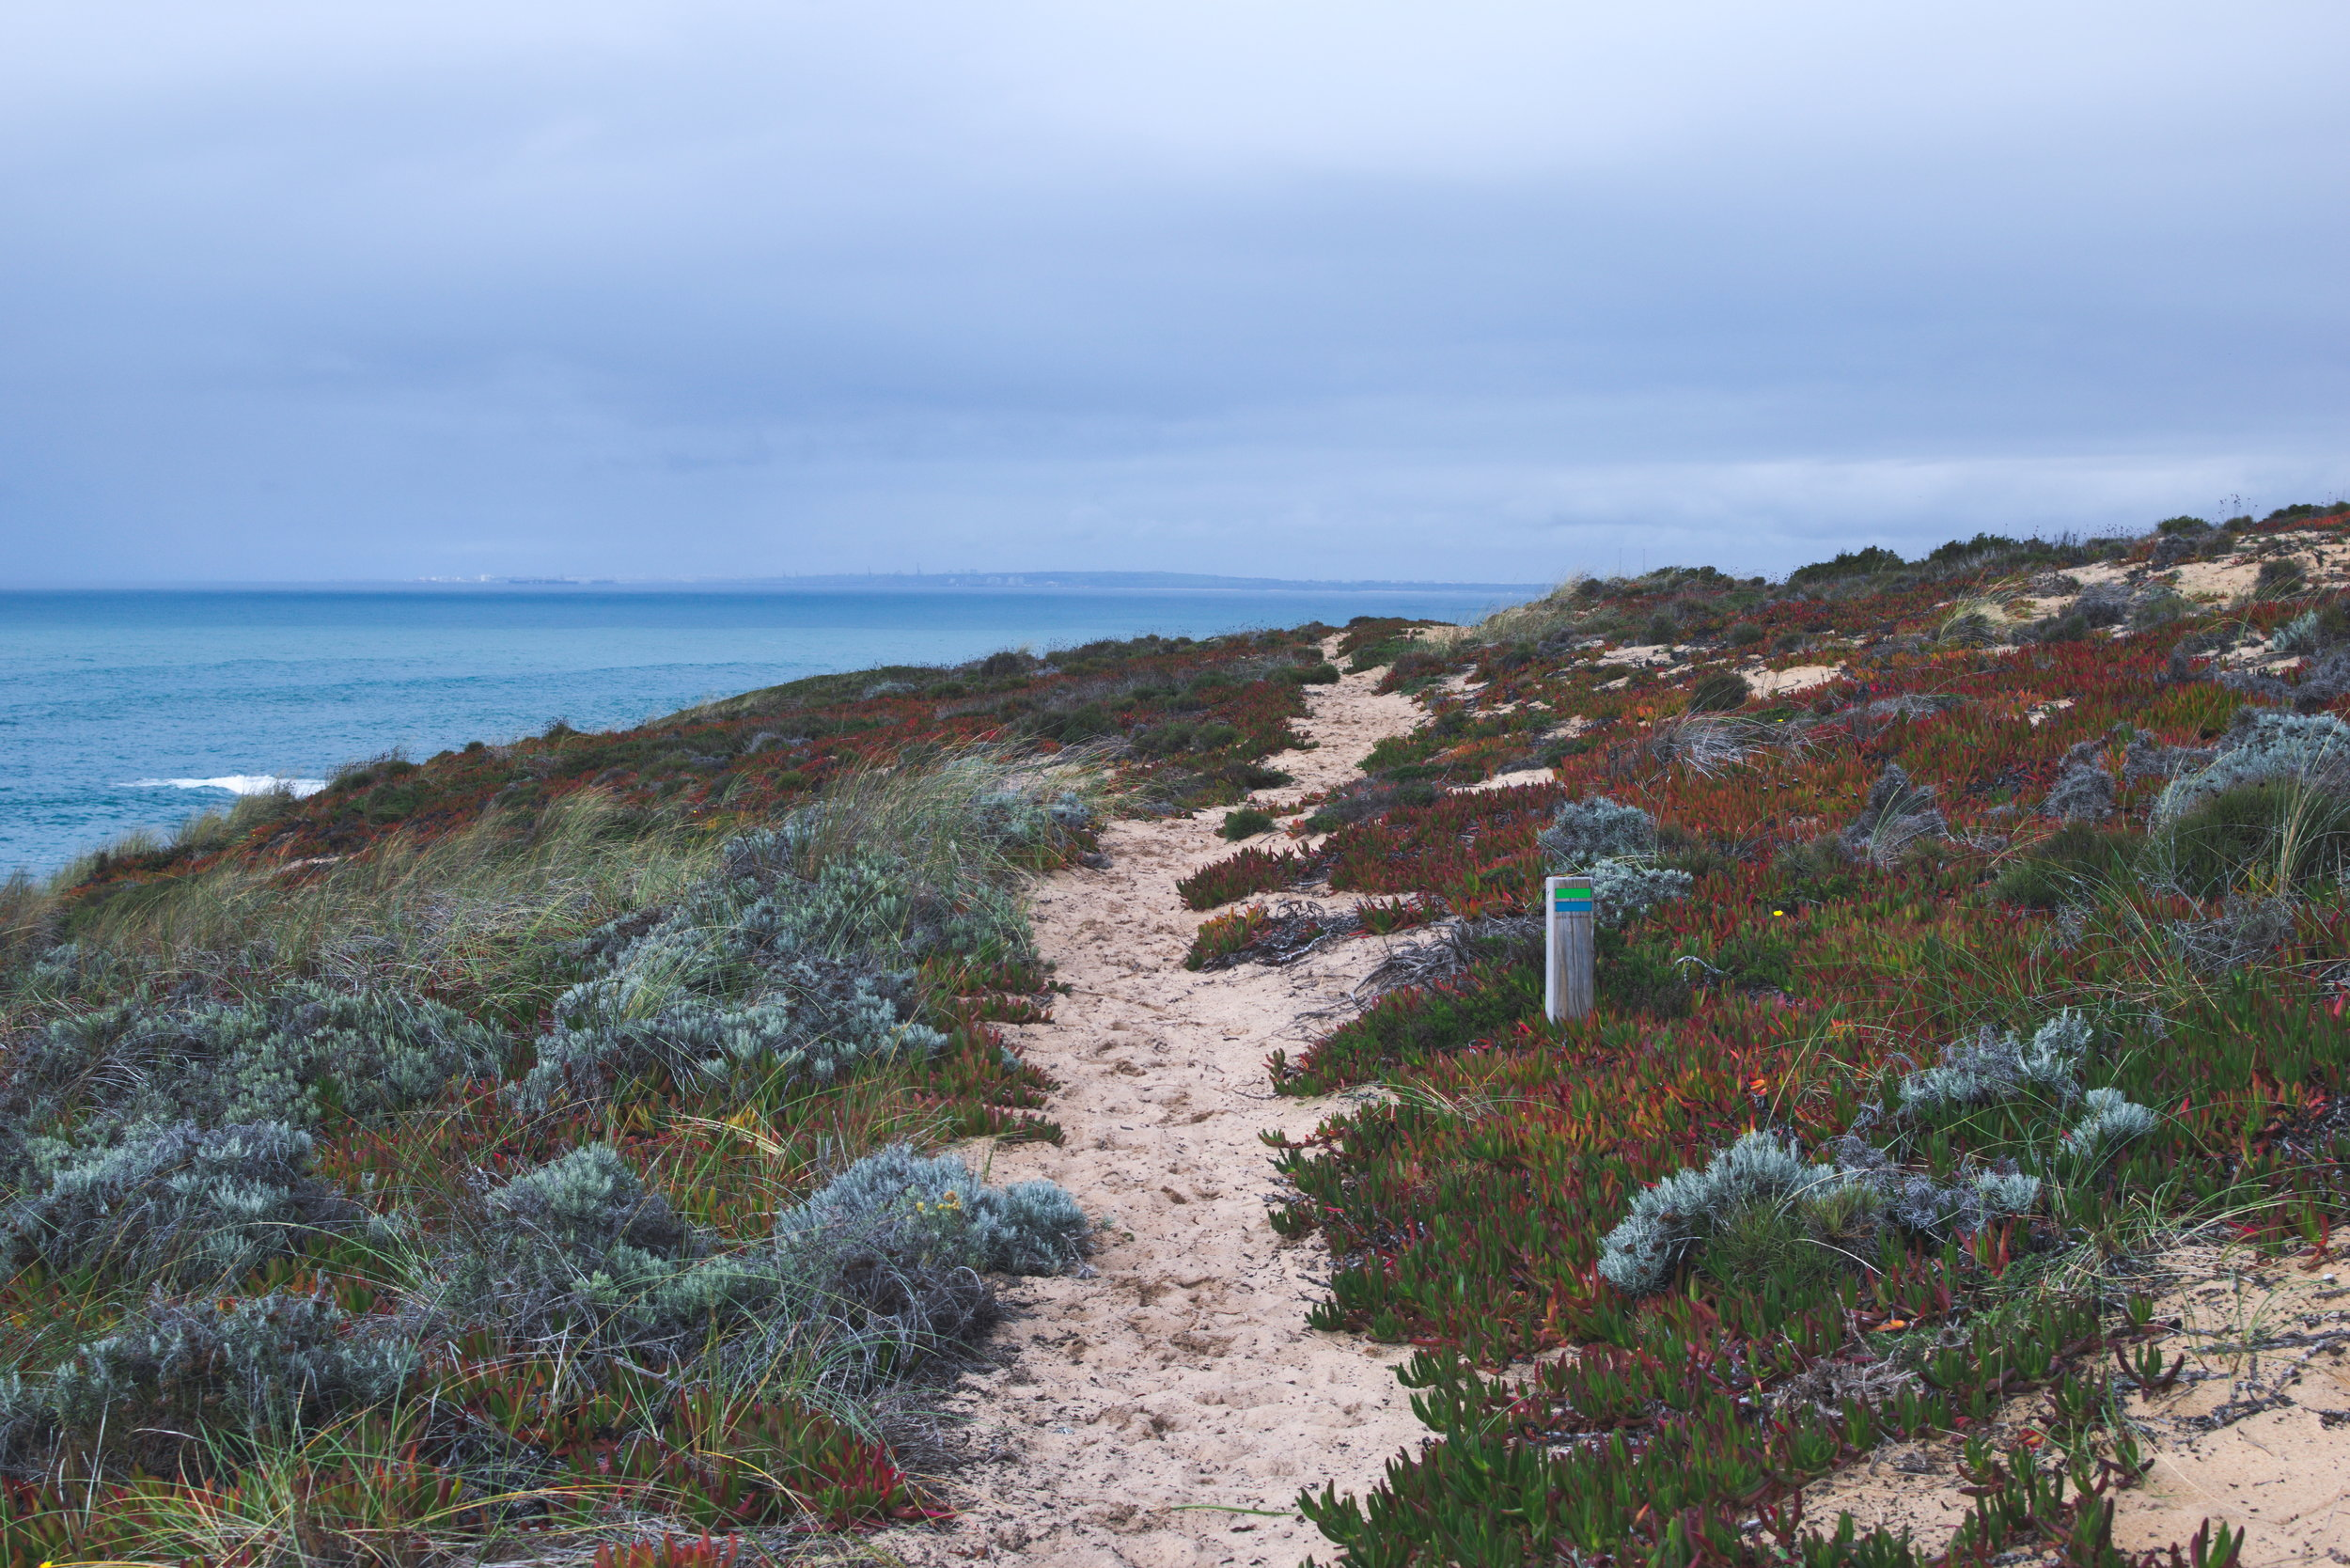 A typical trail along the Rota Vicentina -- well-marked and easy to discern.